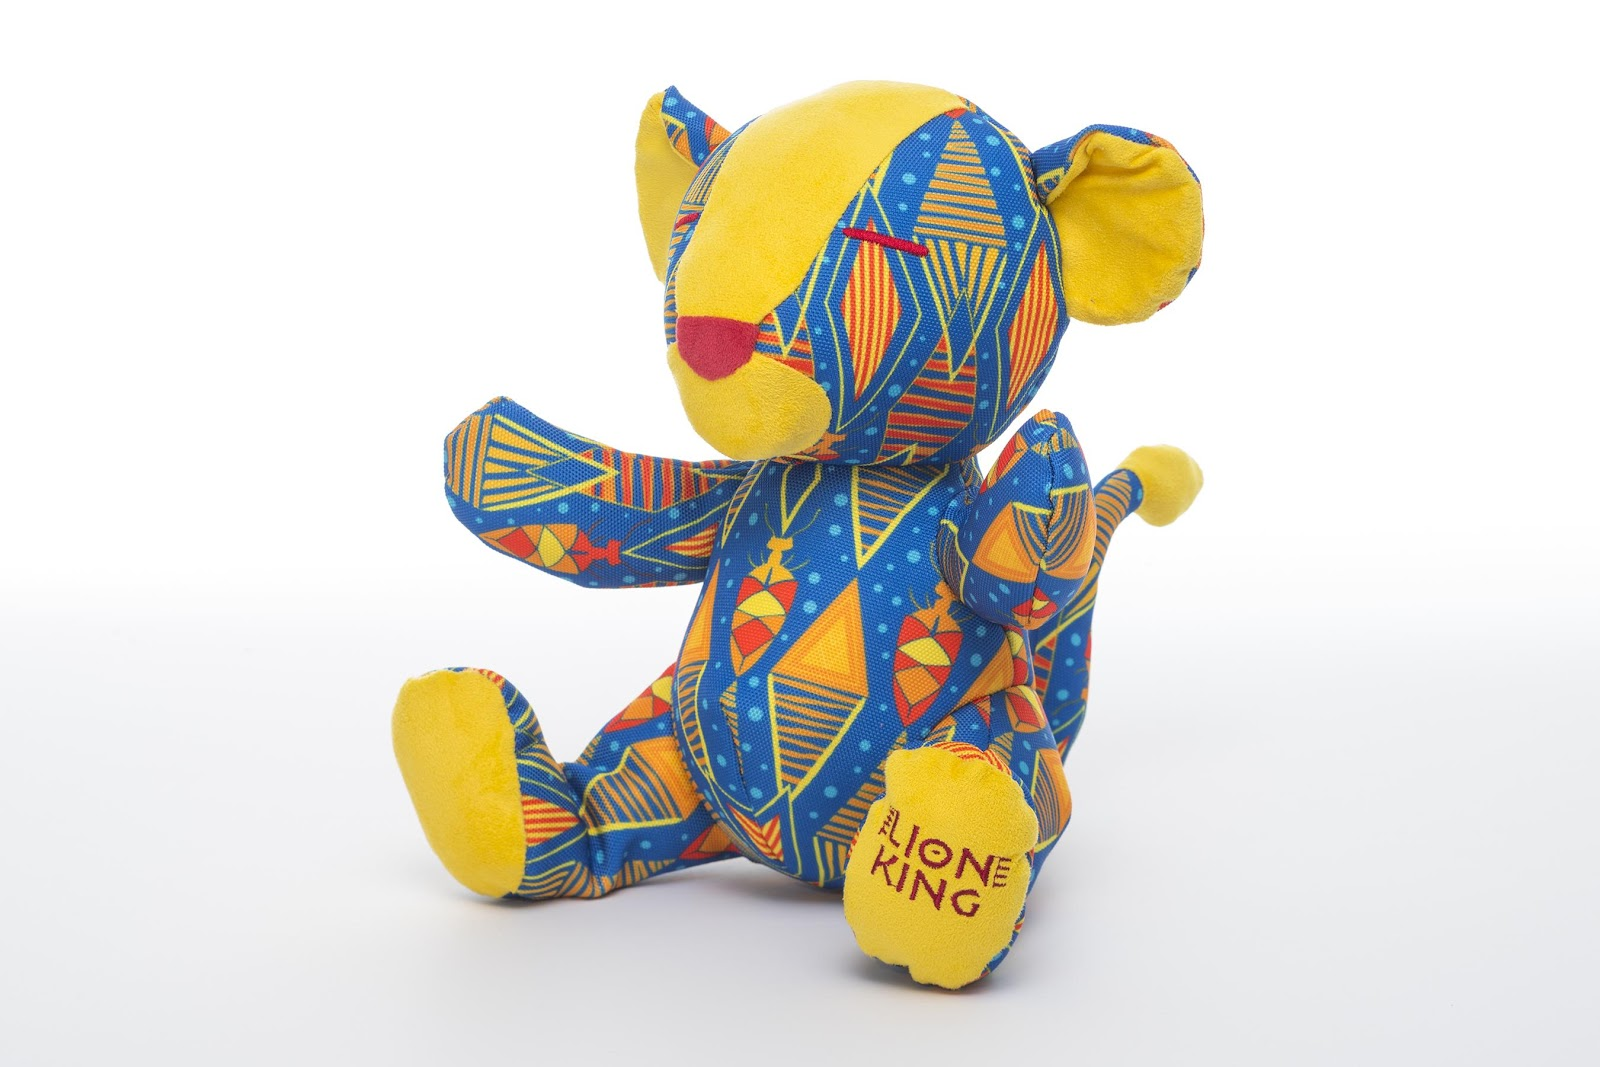 Special Edition Plush Supporting The Wildlife Conservation Network's (WCN) Lion Recovery Fund (LRF) Now Available At Disney's Animal Kingdom 1